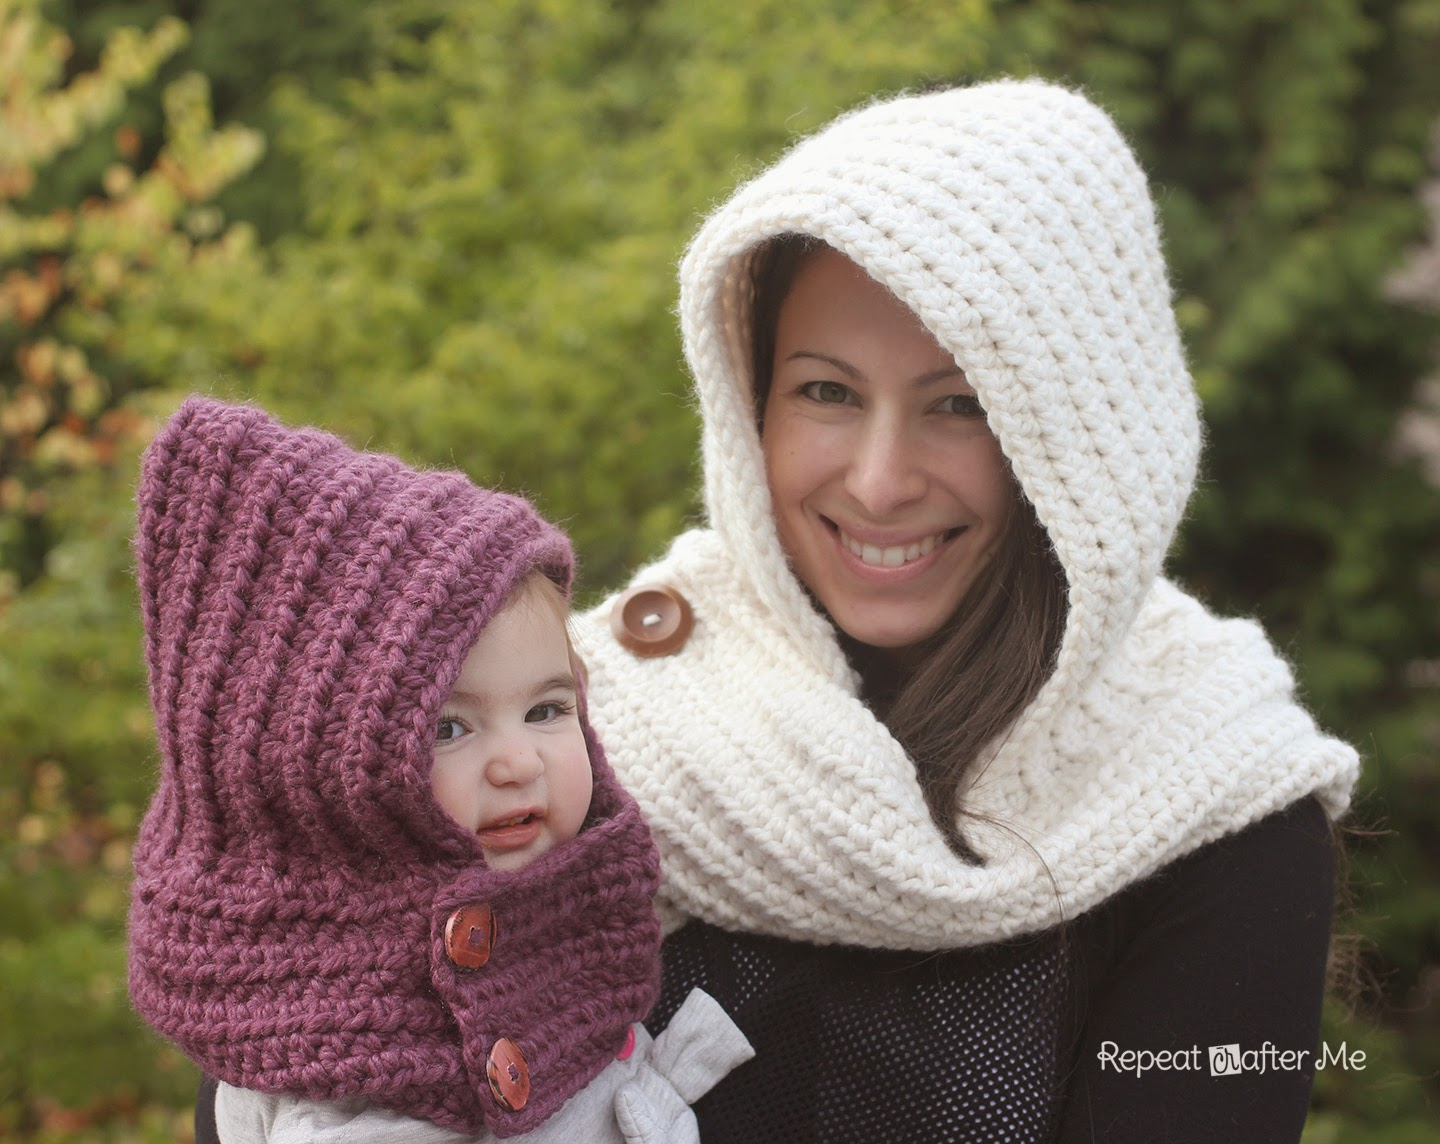 Free Crochet Pattern For Infinity Scarf With Hood : 20 Free Crochet Scarves and Cowls Oombawka Design Crochet